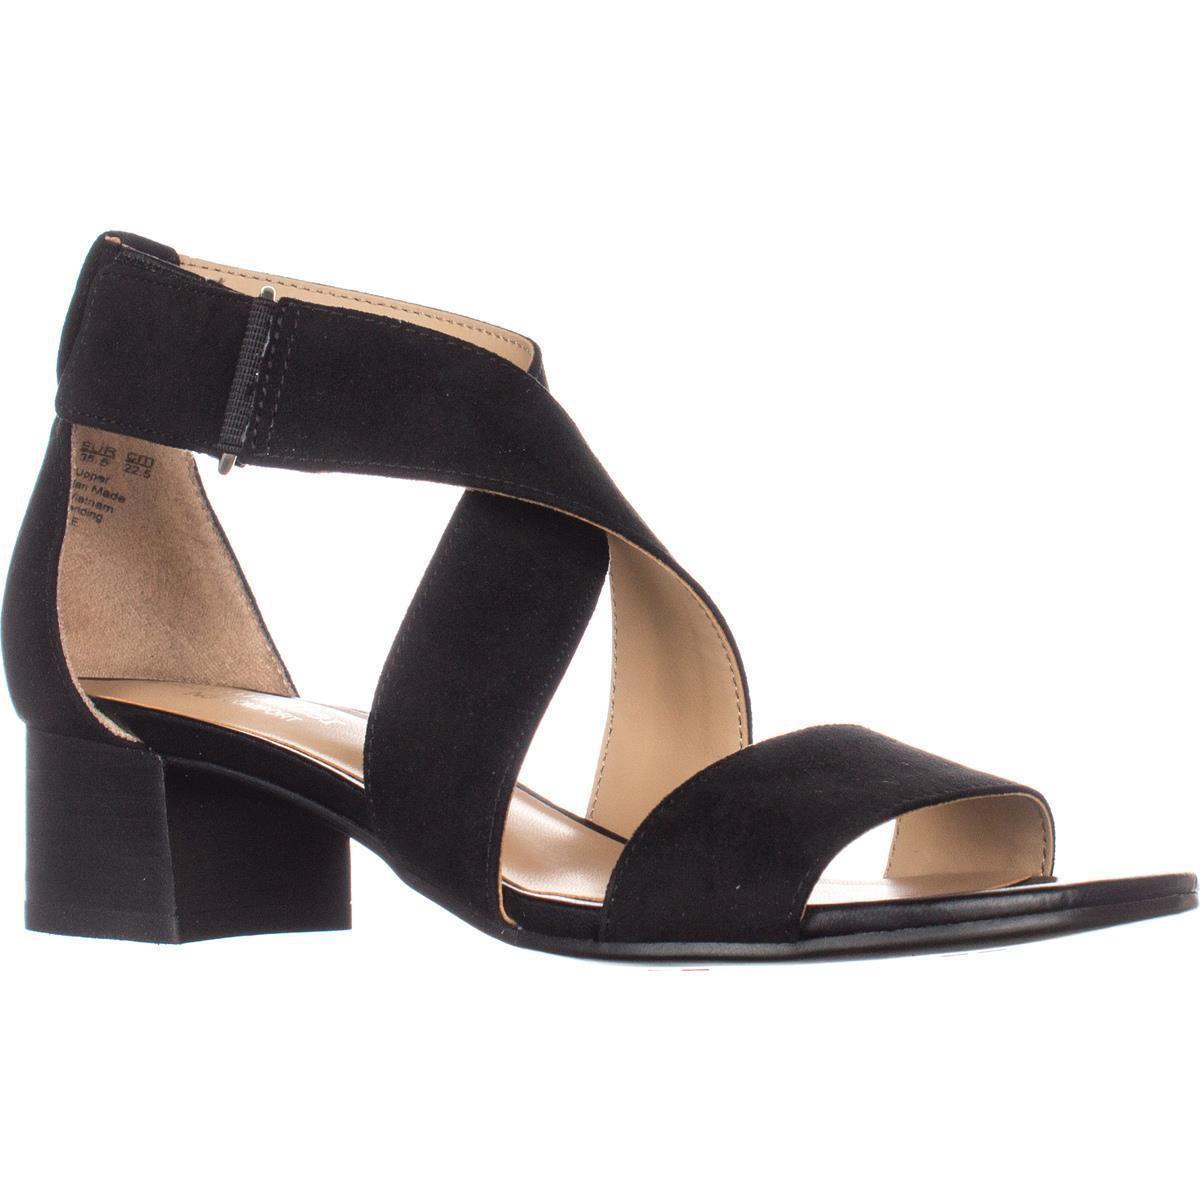 7514a6ffca2 Lyst - Naturalizer Adele Ankle Strap Sandals in Black